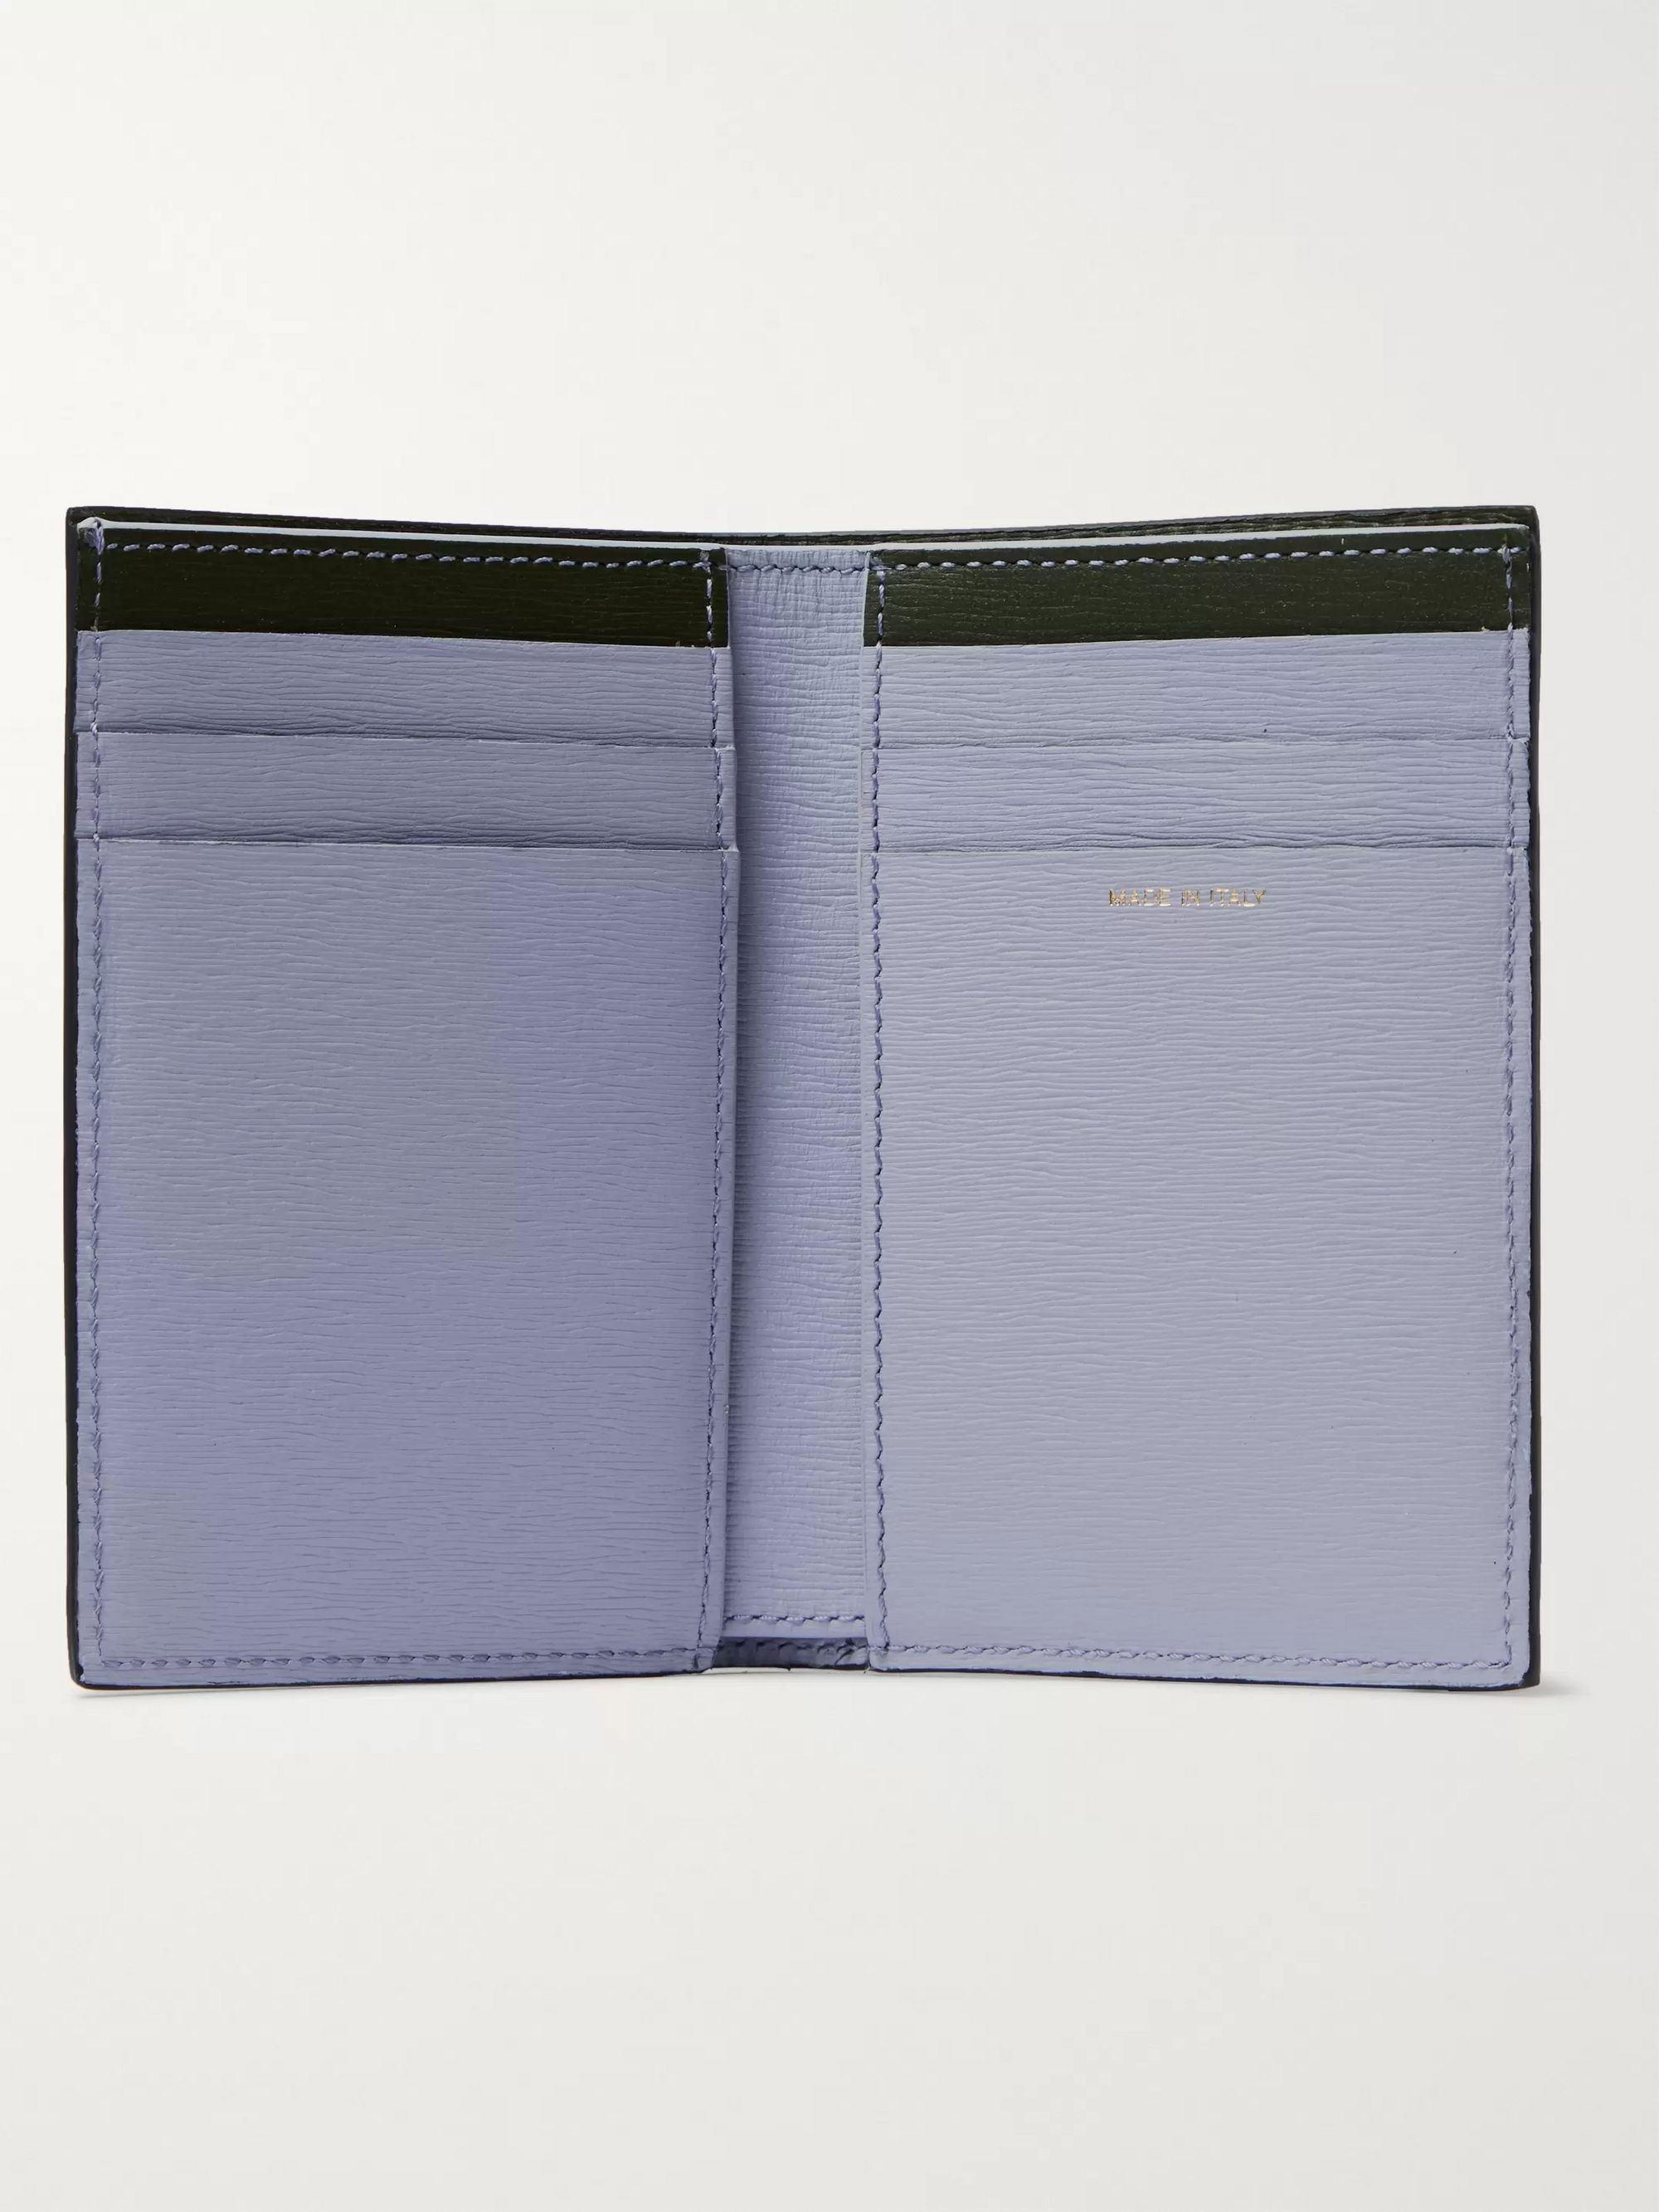 Paul Smith Colour-Block Textured-Leather Billfold Wallet